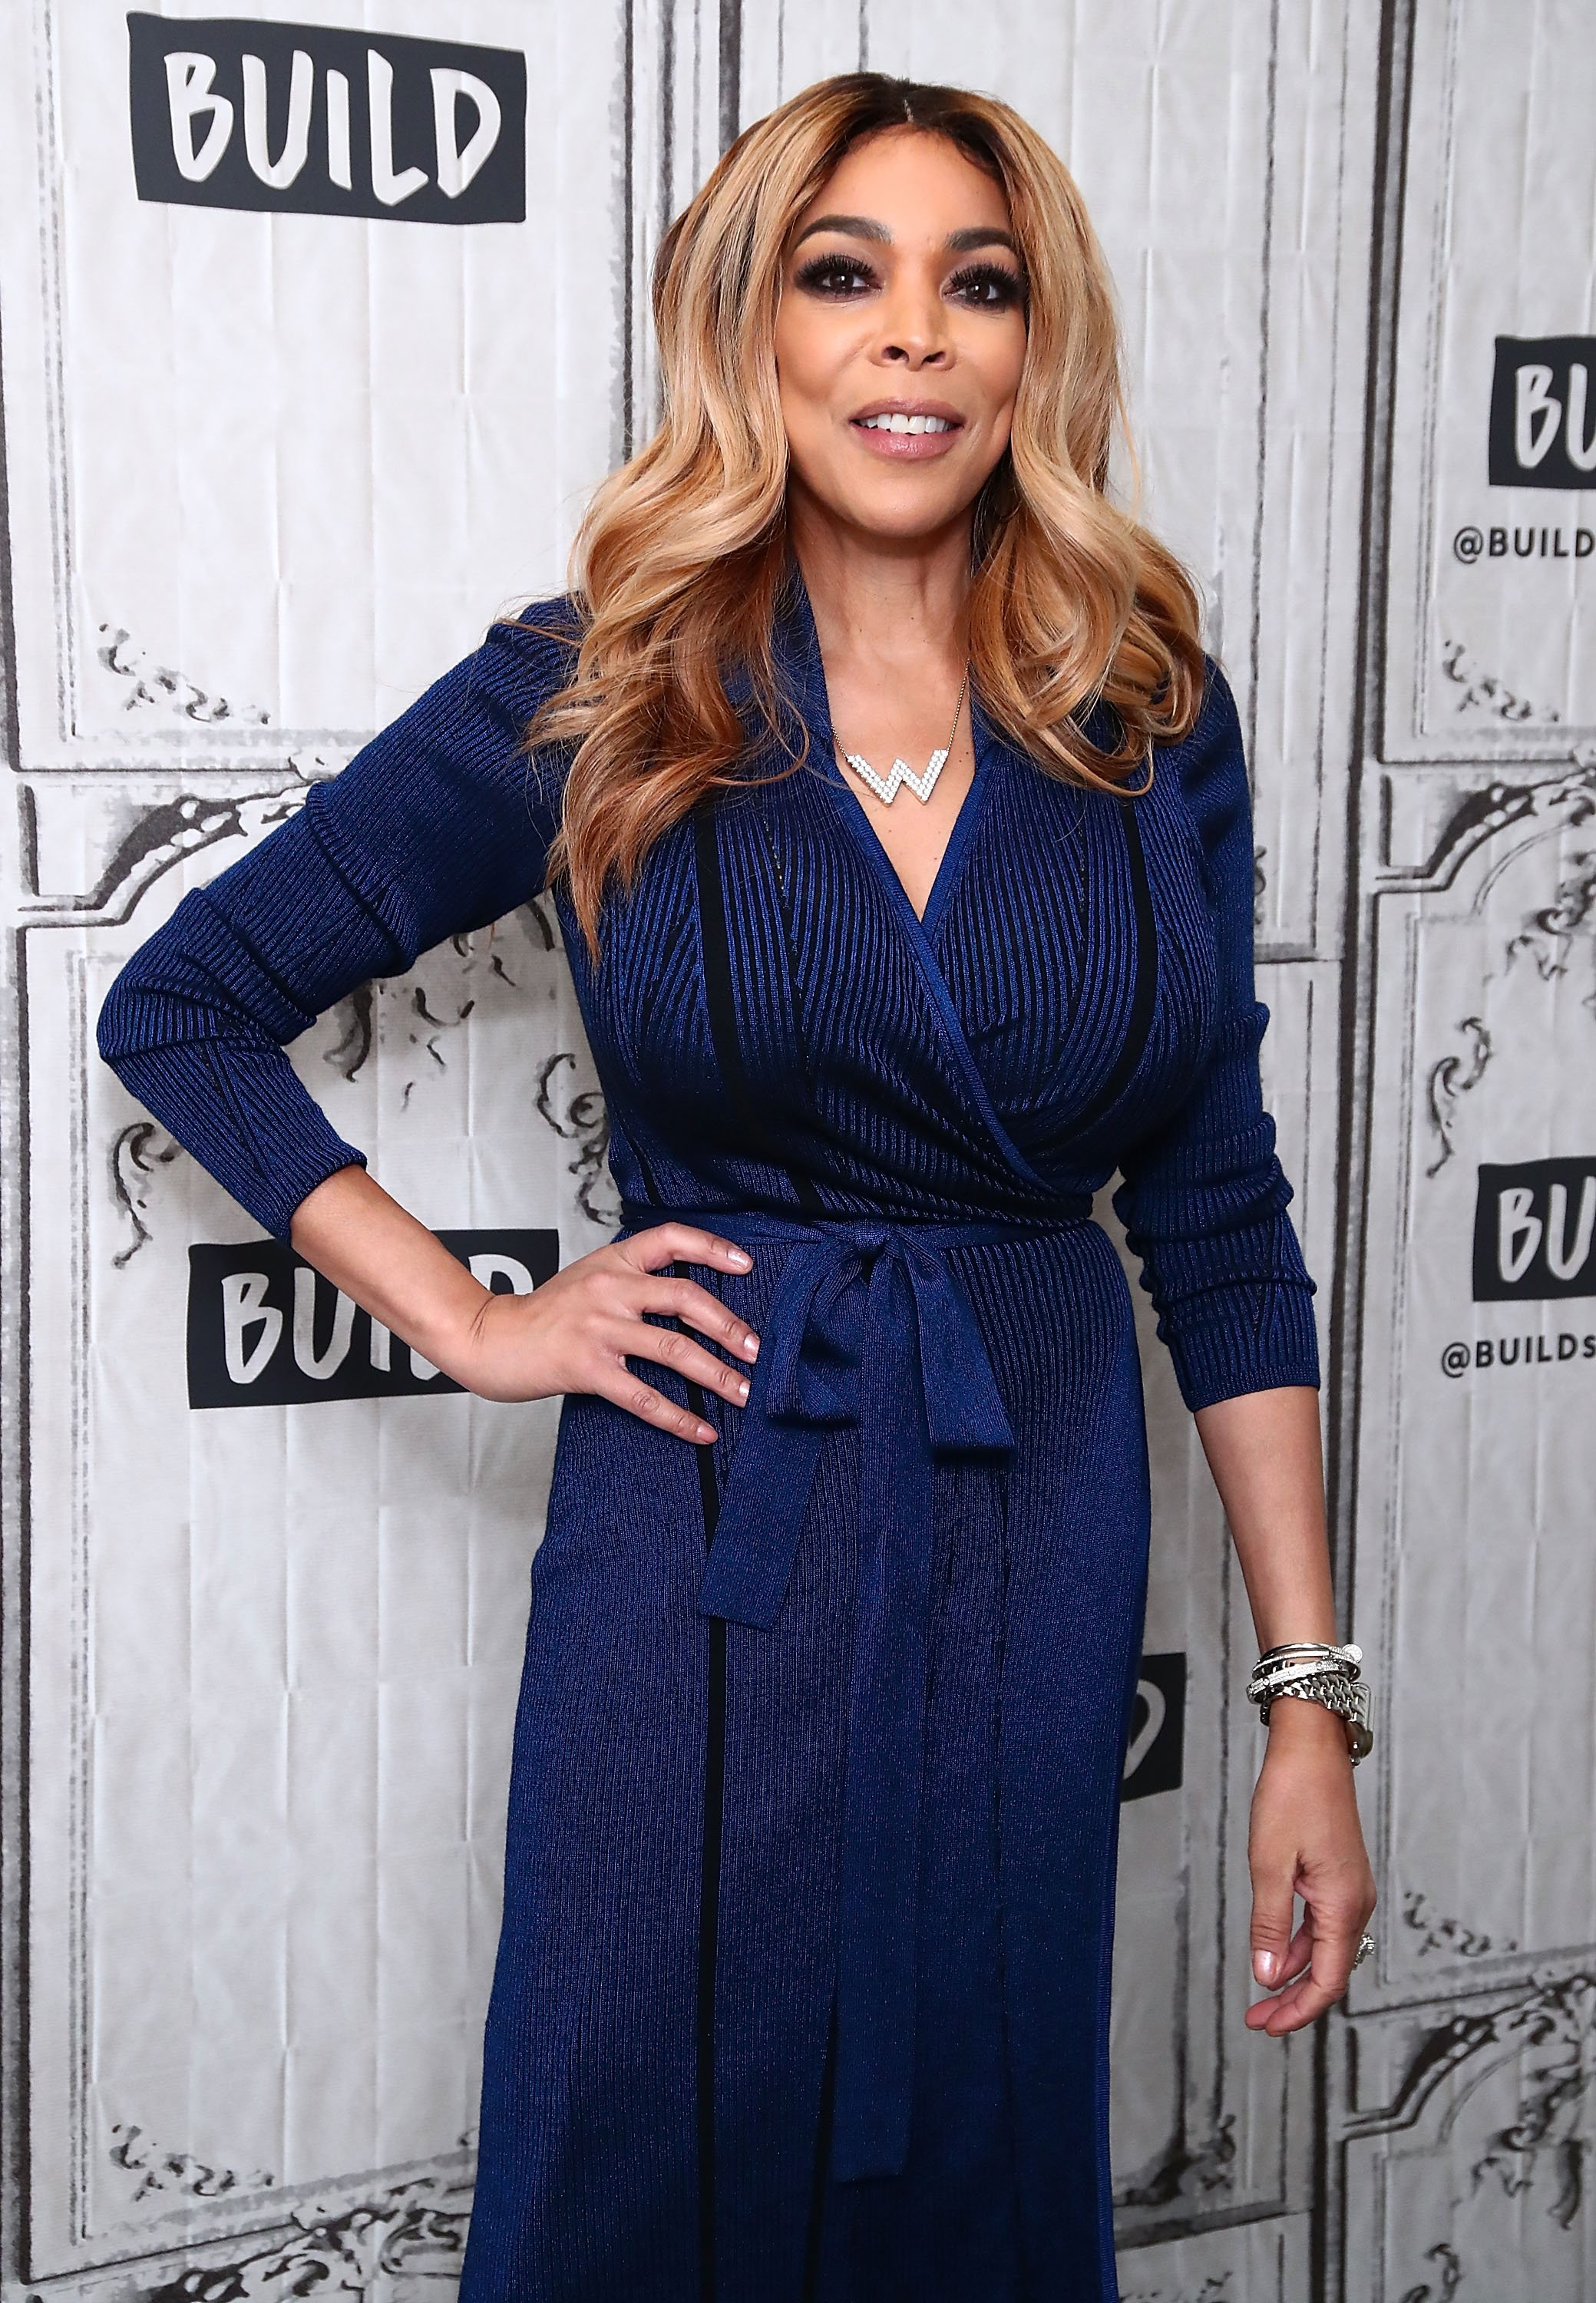 Wendy Williams im Build Studio am 17. April 2017 in New York City. | Quelle: Getty Images